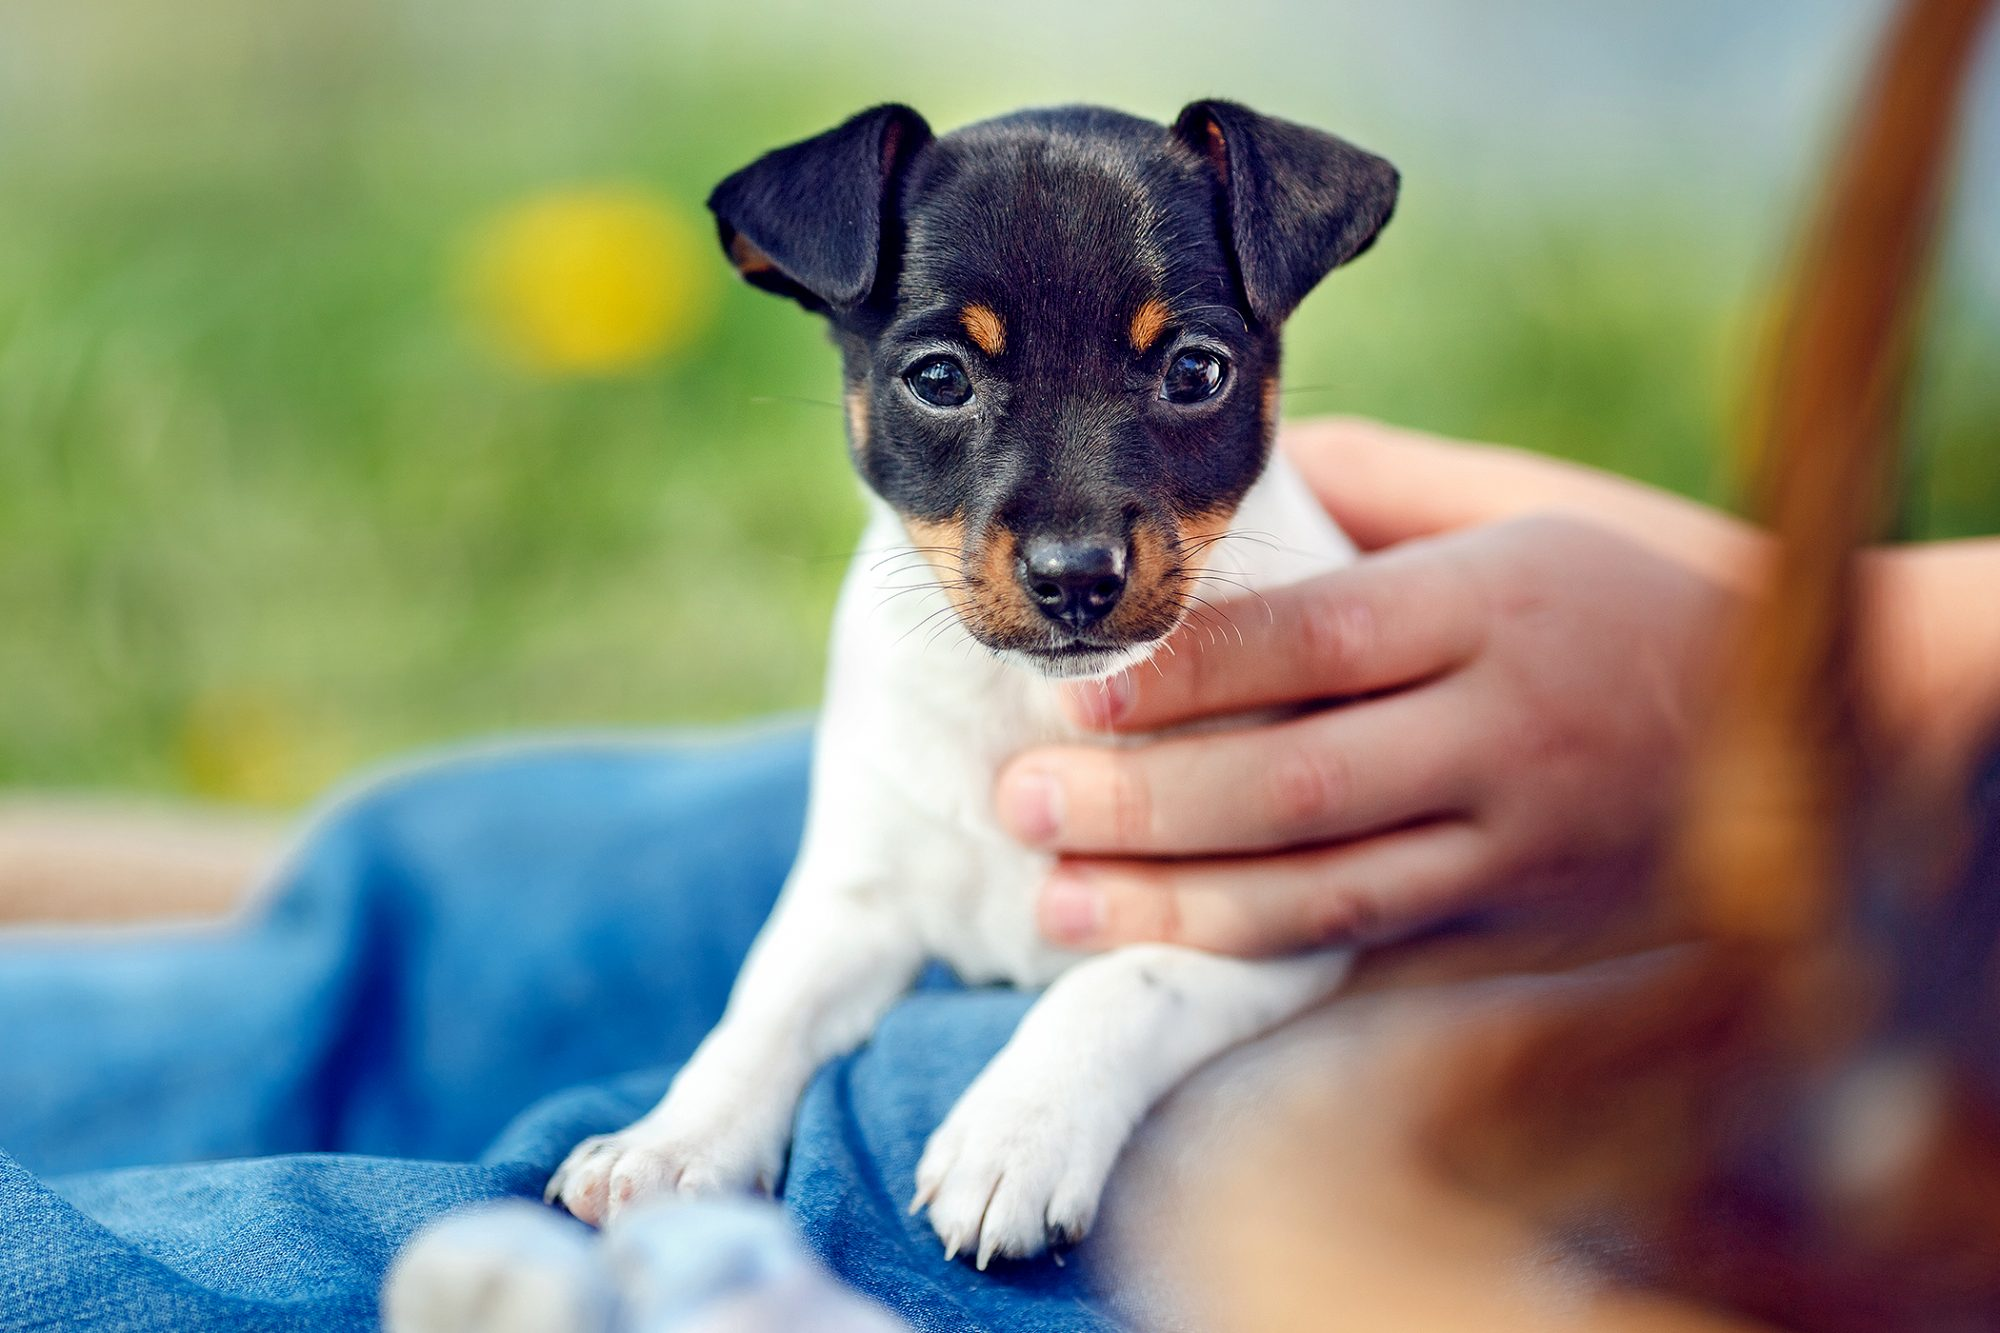 Toy fox terrier puppy relaxes on lap of someone wearing jeans